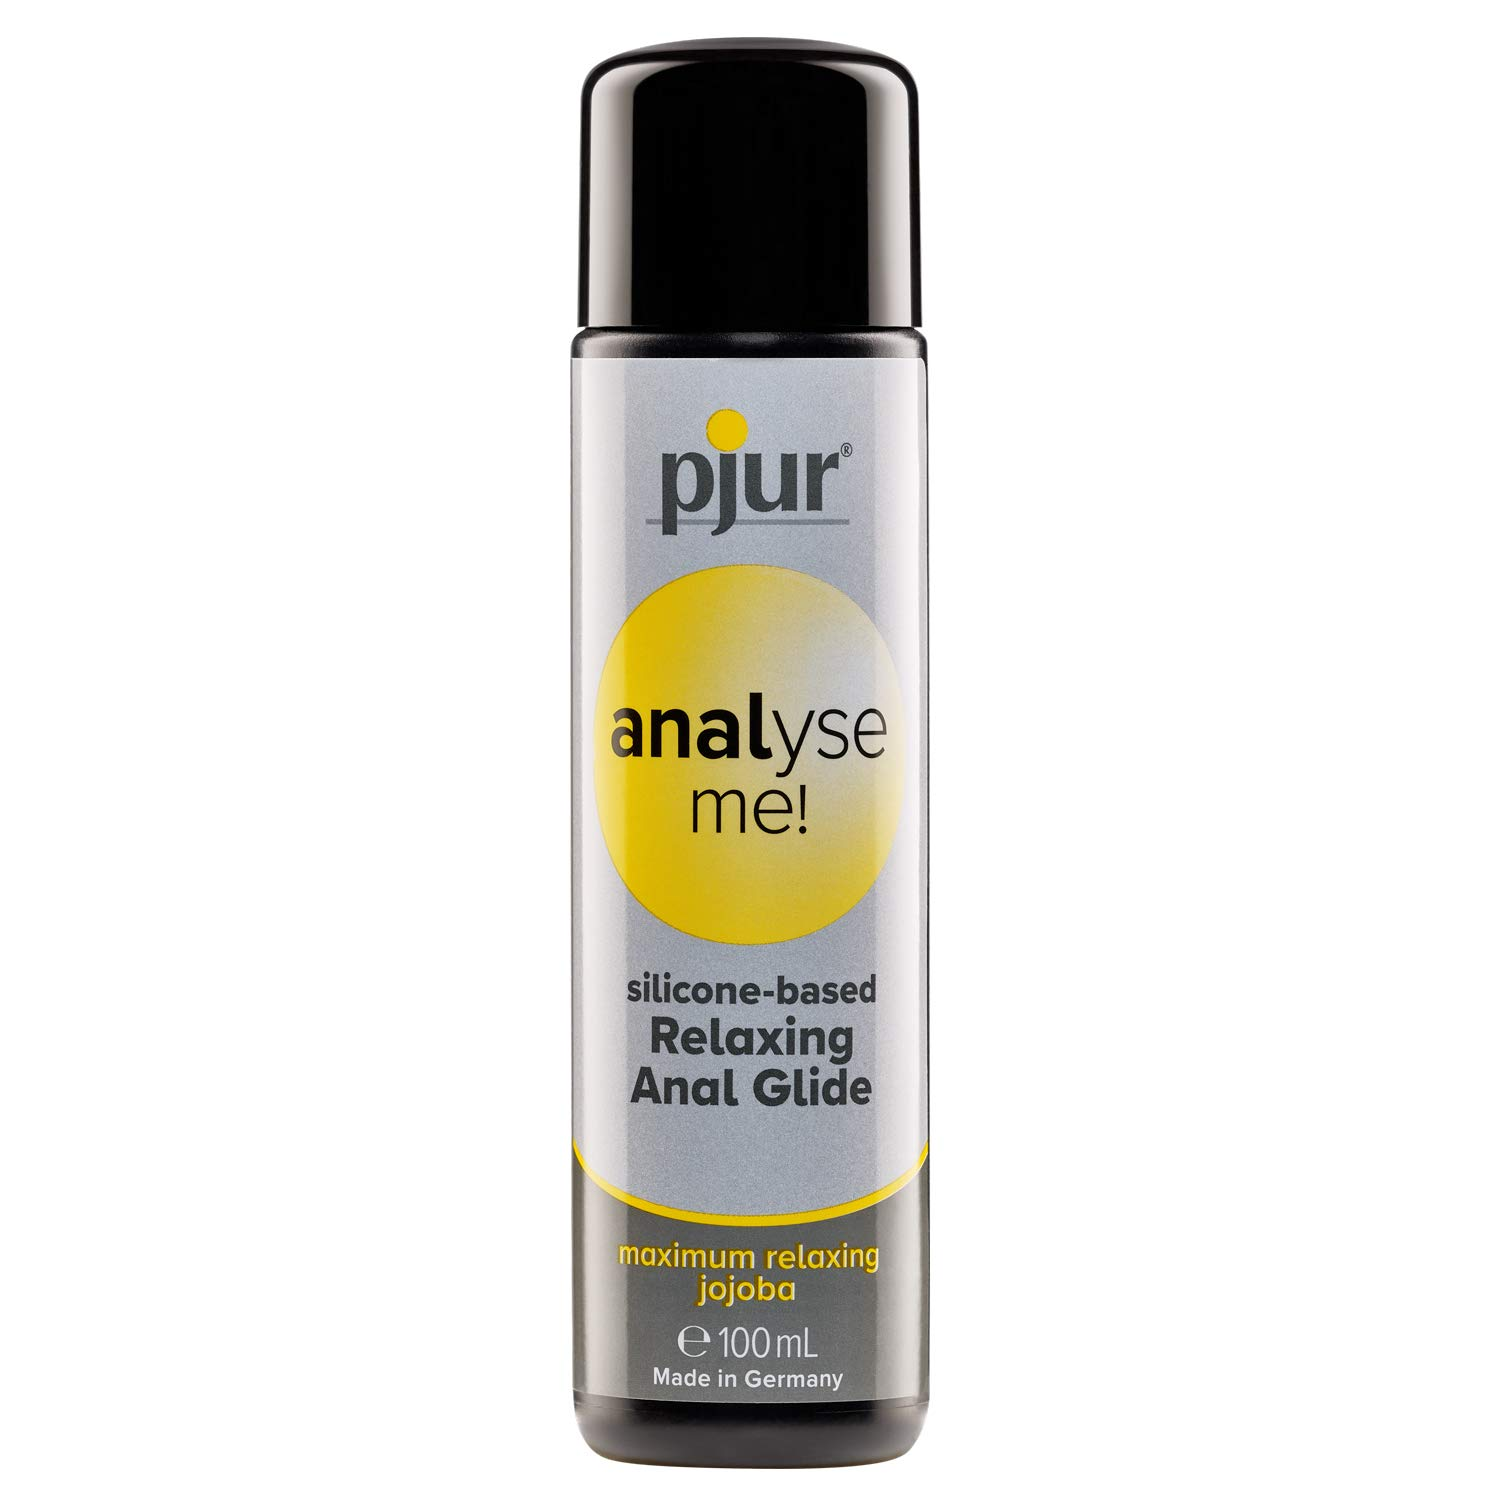 pjur Analyse me! Relaxing Silicone Anal Glide - Silicone-Based Personal Lubricant for Comfortable Anal Sex - Extra-Long Lubrication (100ml)